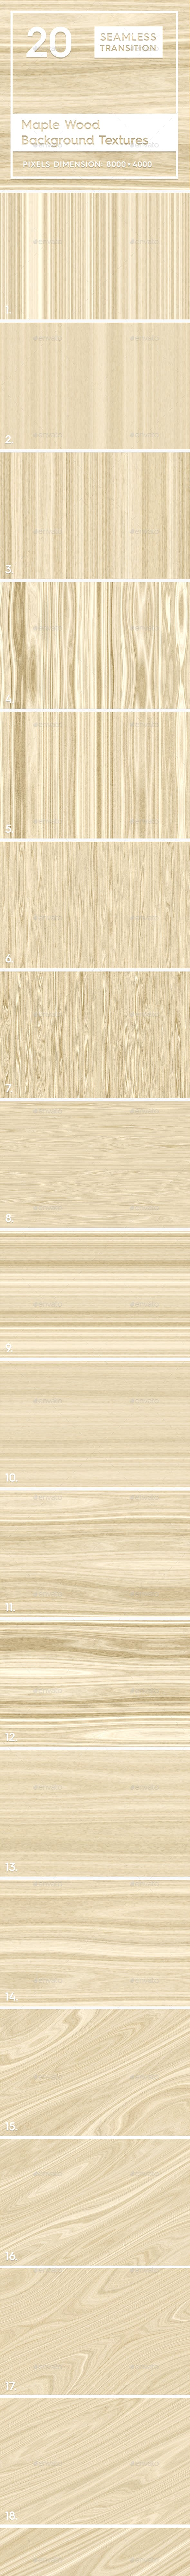 20 Maple Wood Background Textures - 3DOcean Item for Sale